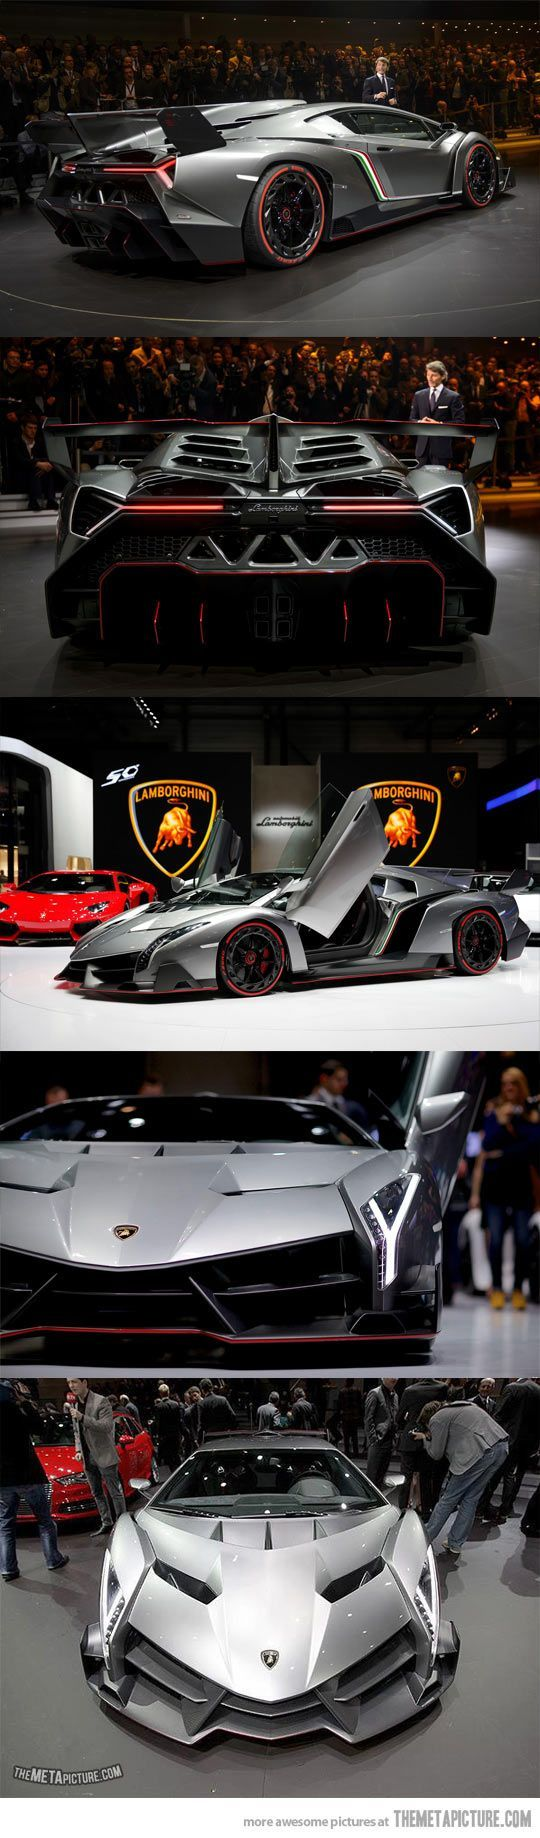 Lamborghini Veneno, solely three have been made on the earth click on on www.amazon.com/…